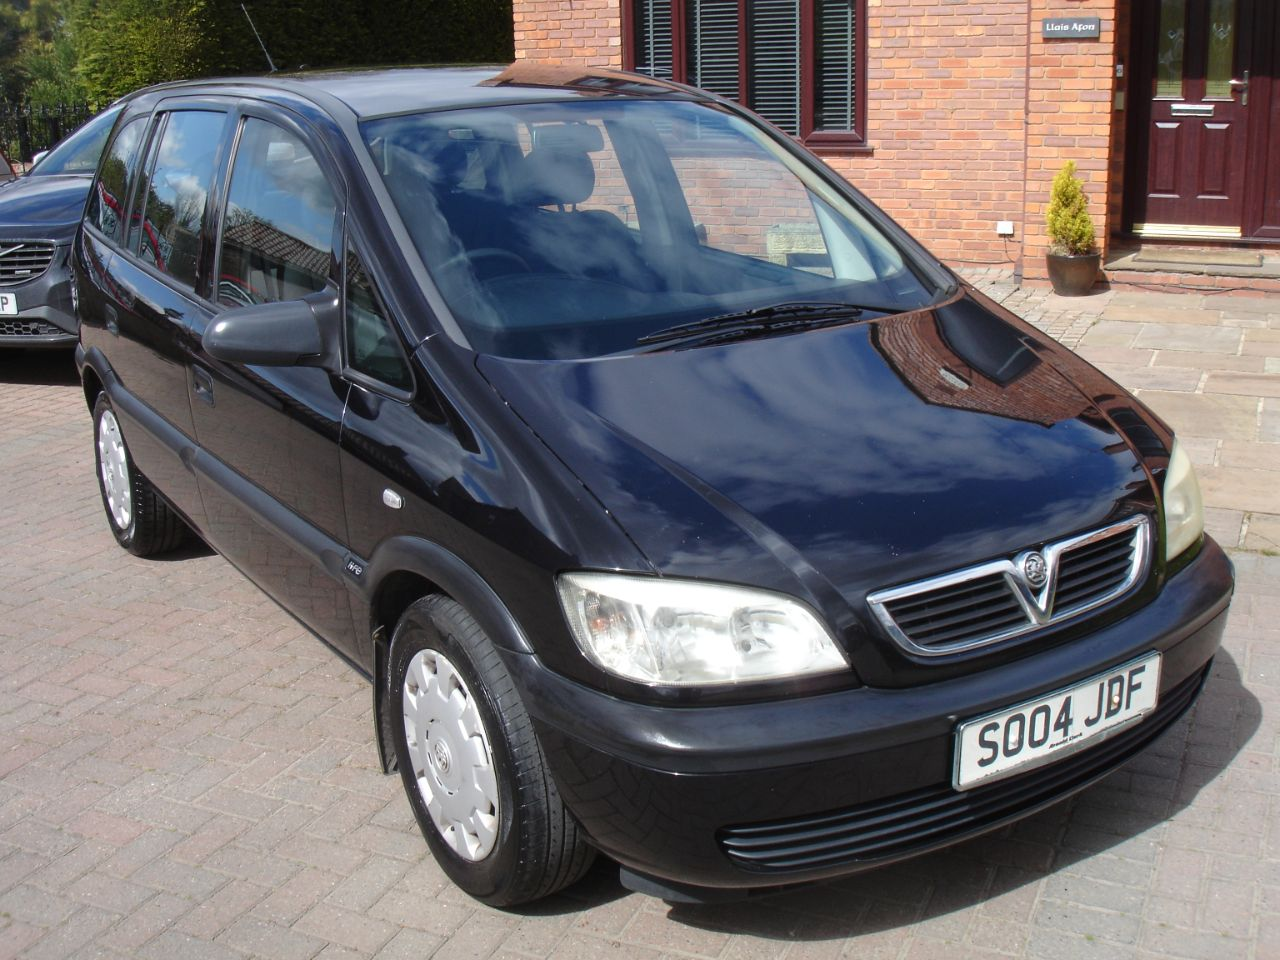 Vauxhall Zafira 2.0 DTi Life 5dr MPV Diesel Black at Level Pitch Selby